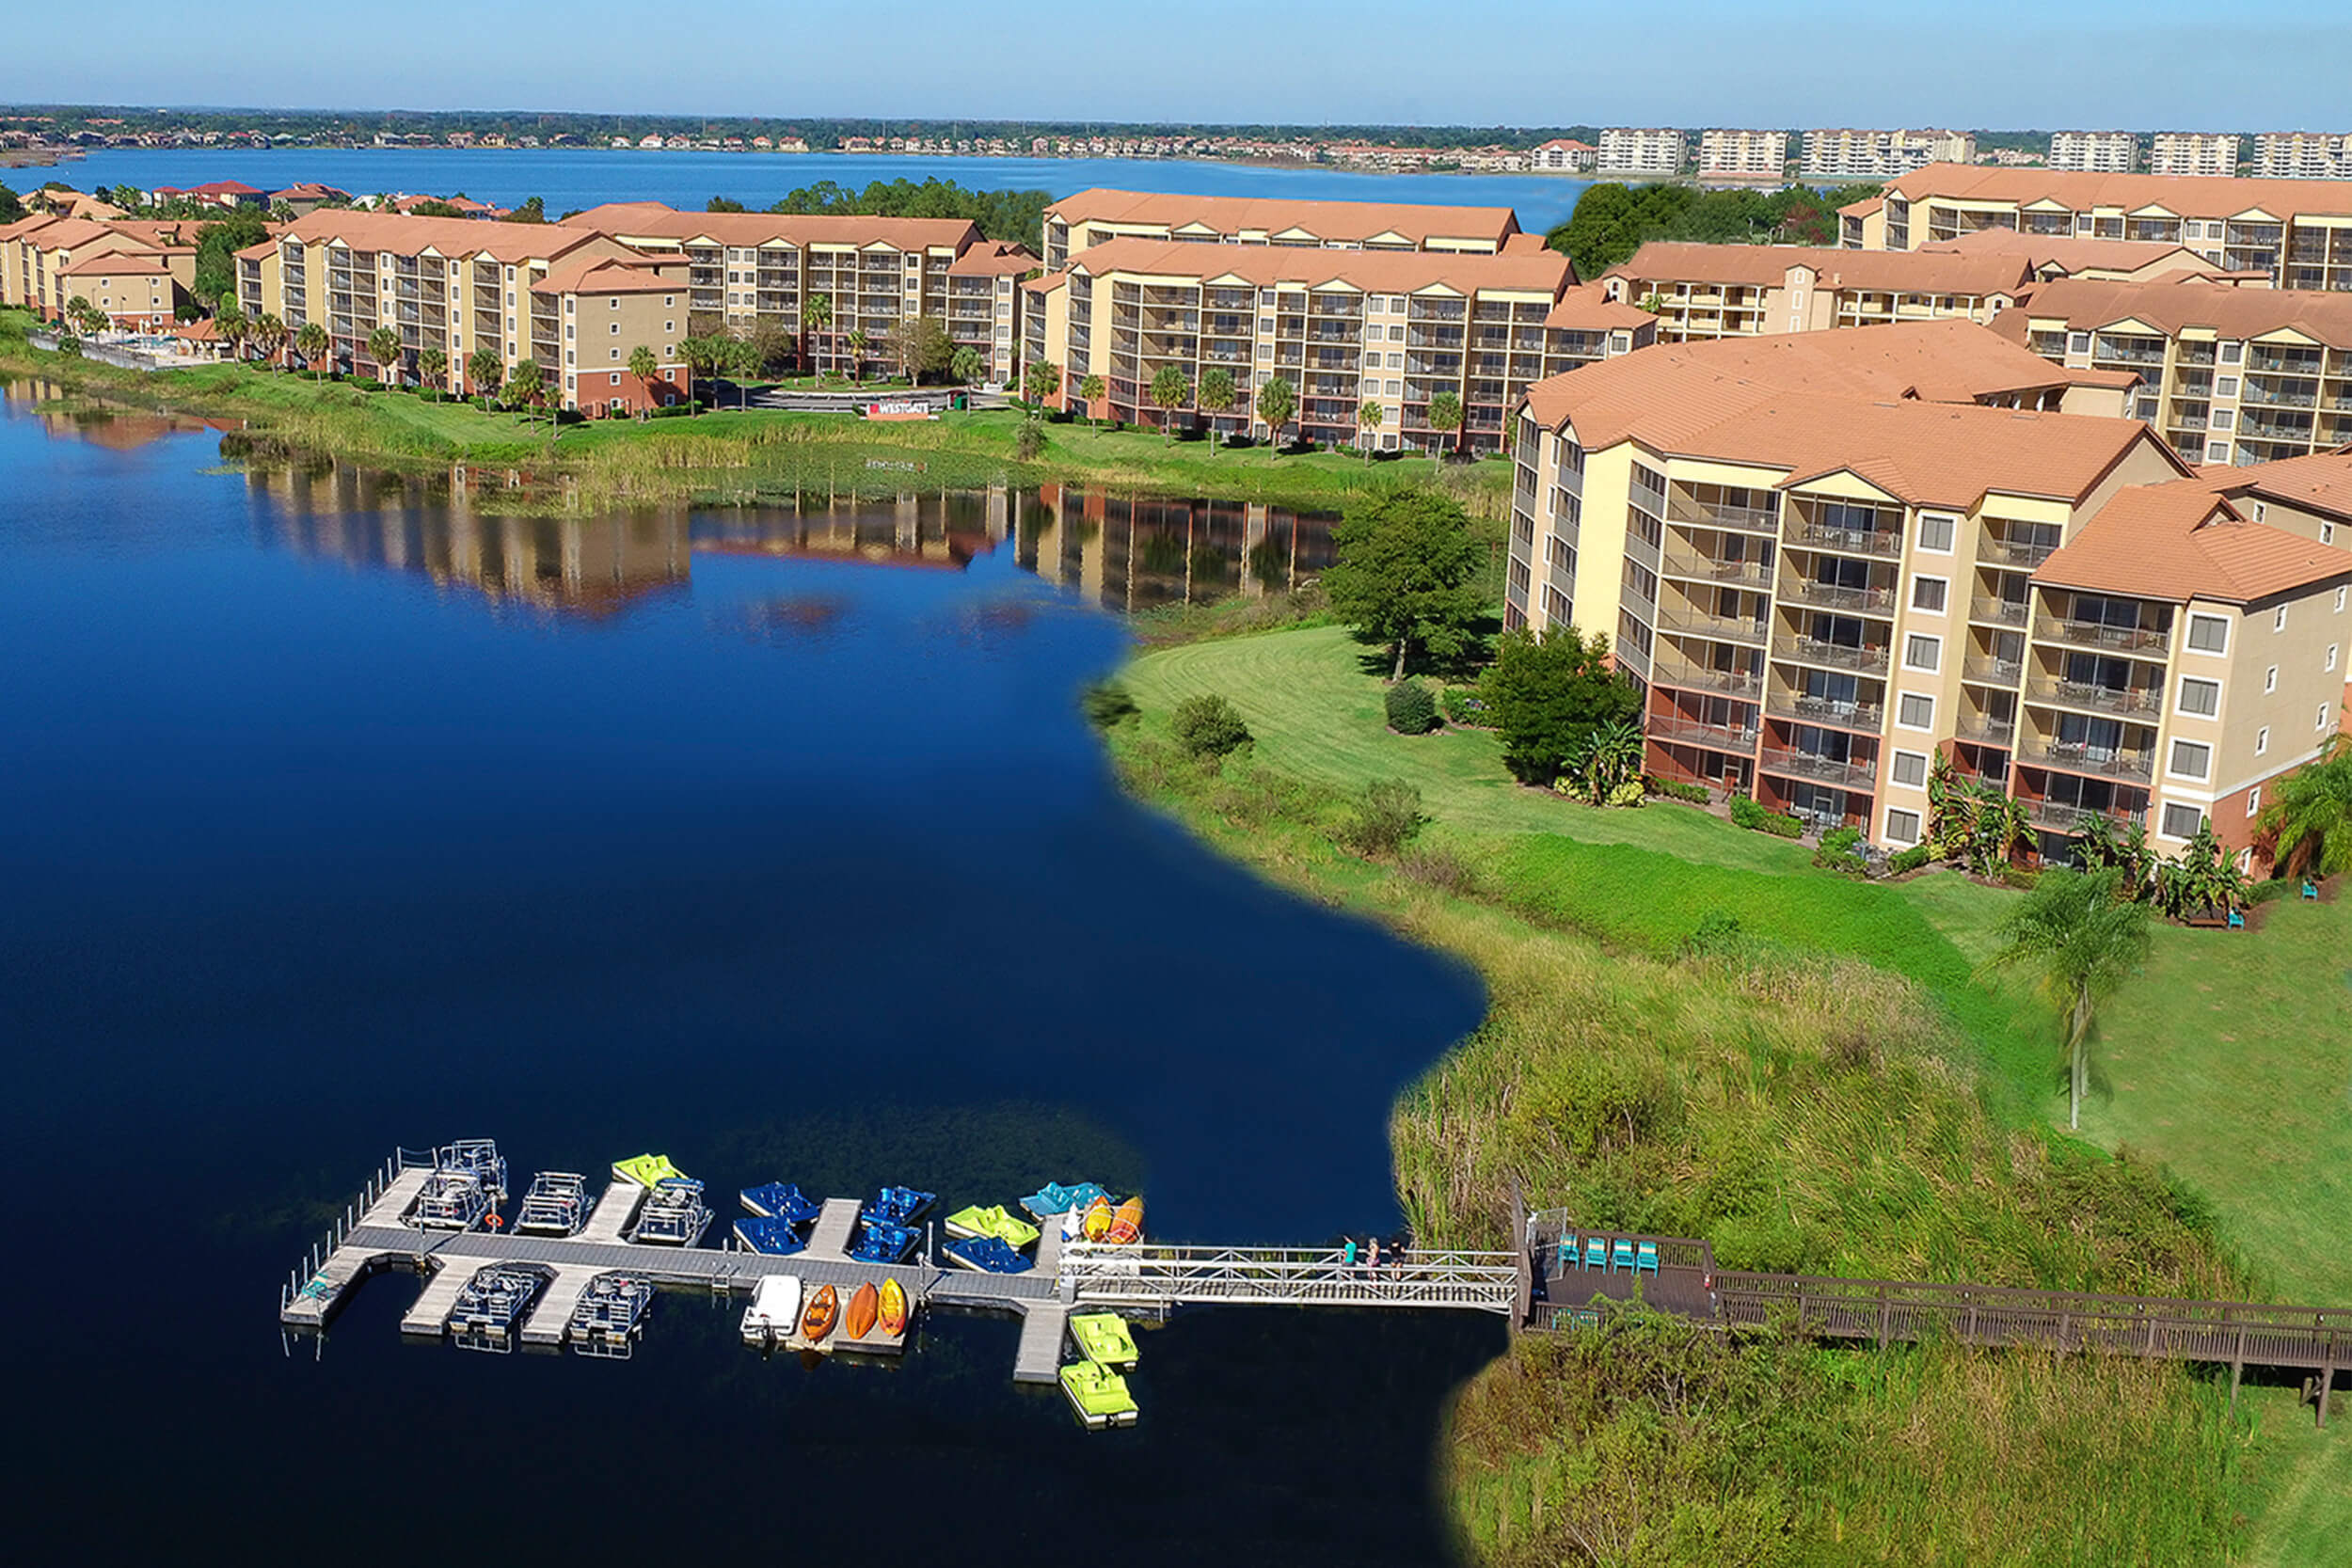 Enjoy a variety of amenities, like renting a kayak or paddle boat at our lake-front resort.